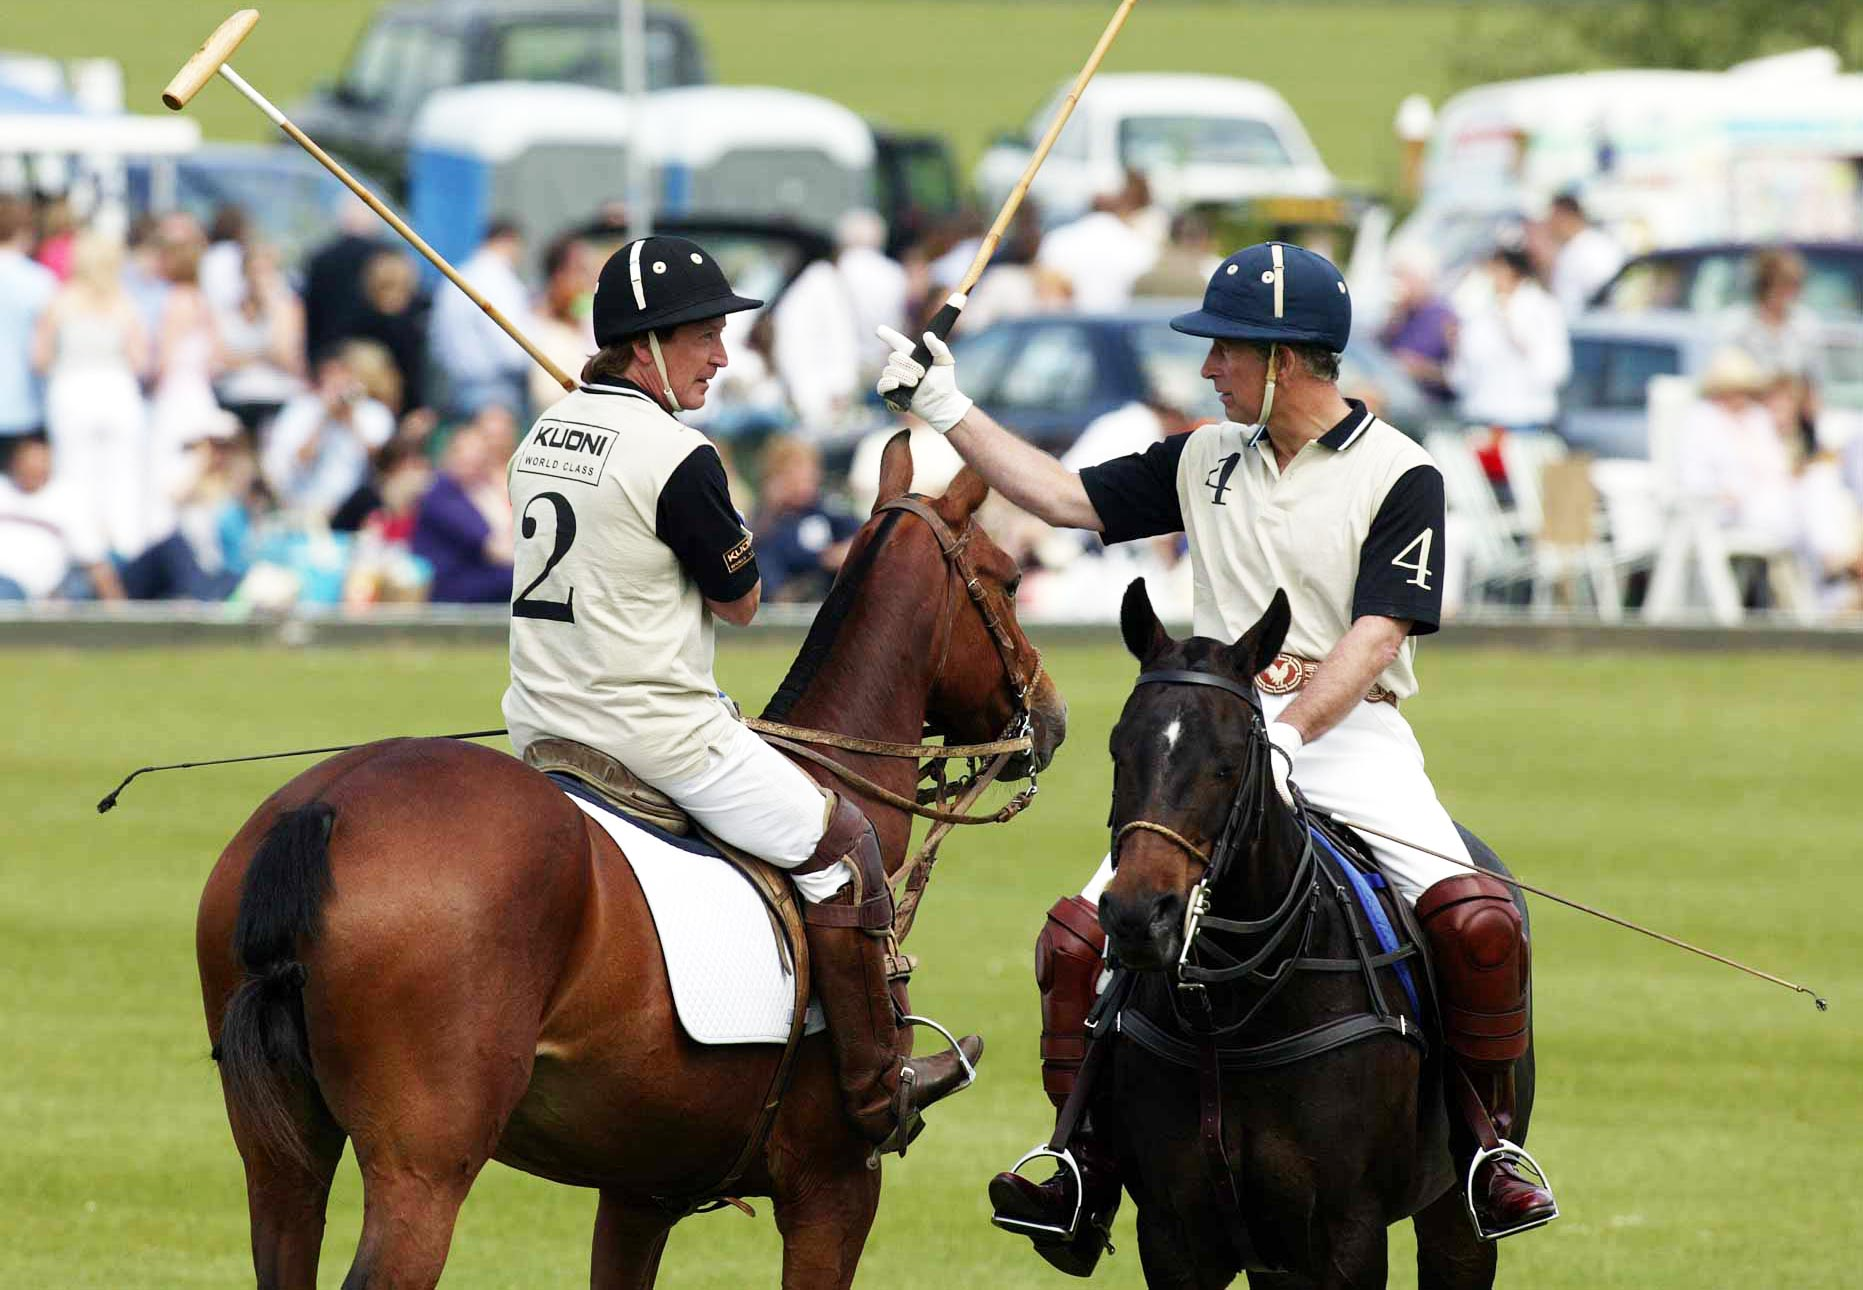 Interview with Kenney Jones, Chairman Of The Hurtwood Park Polo Club